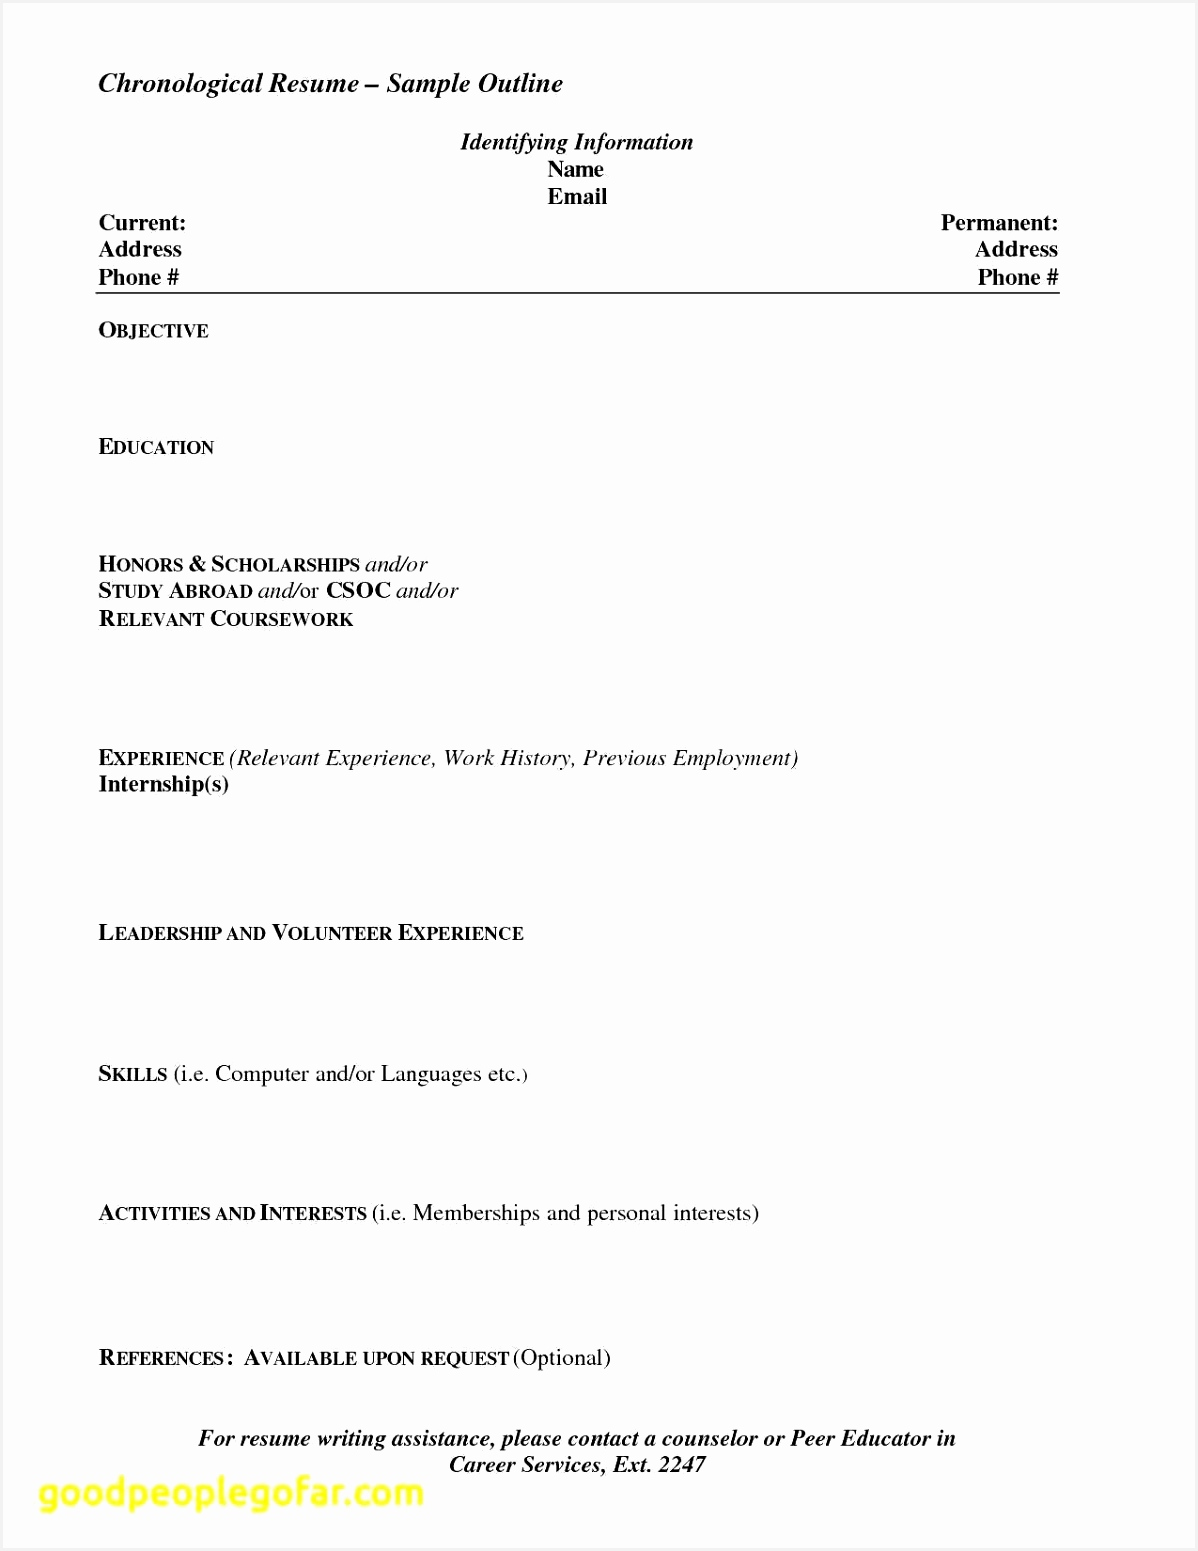 References On Resume Template Rmgda Awesome as References Resume – Salumguilher15511198